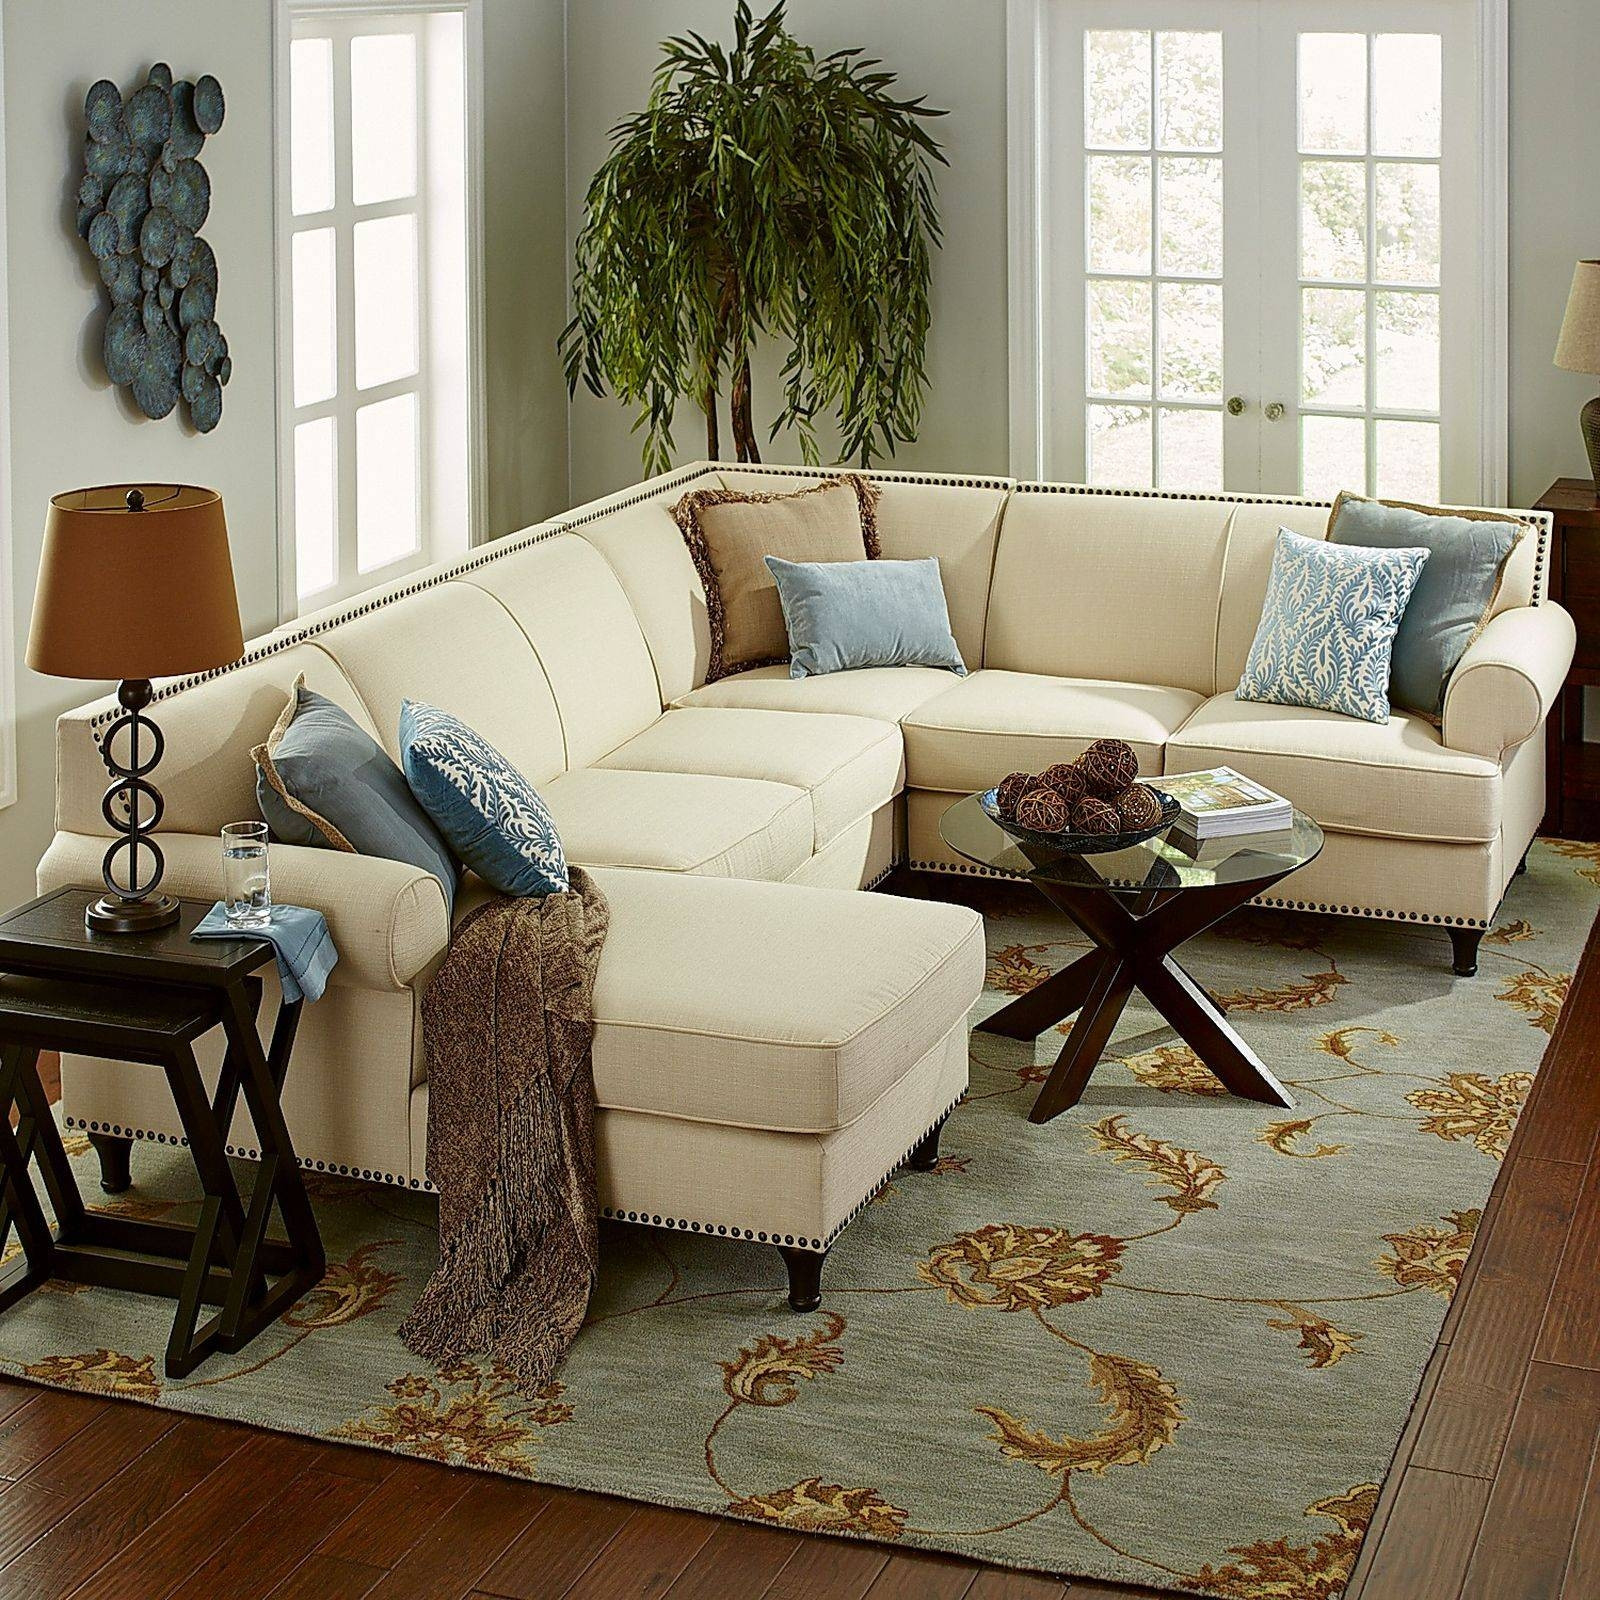 15 Best Ideas of Pier 1 Carmen Sofas